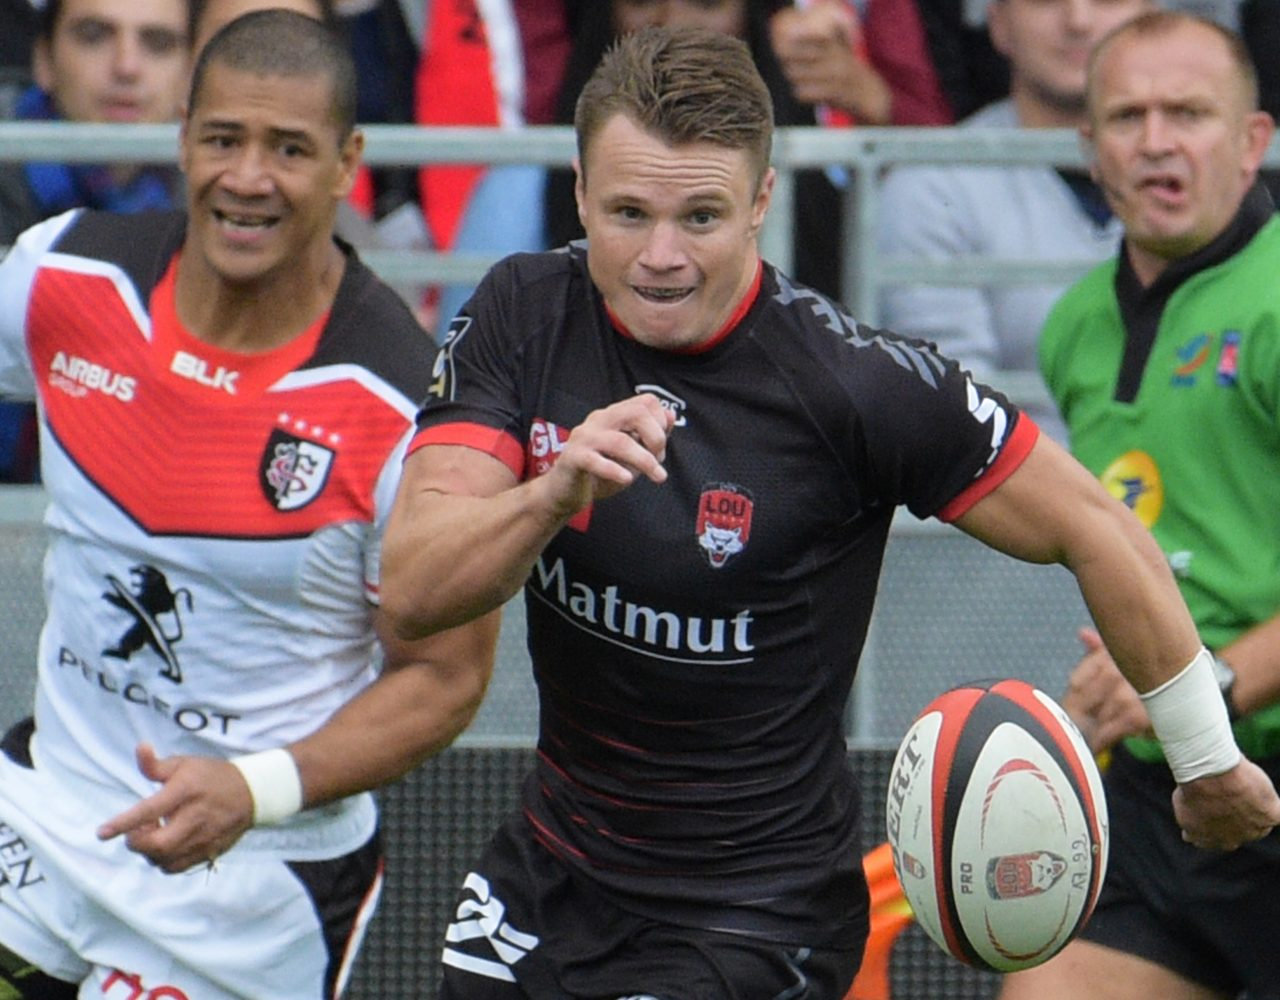 LOU Rugby – La famille Arnold s'agrandit